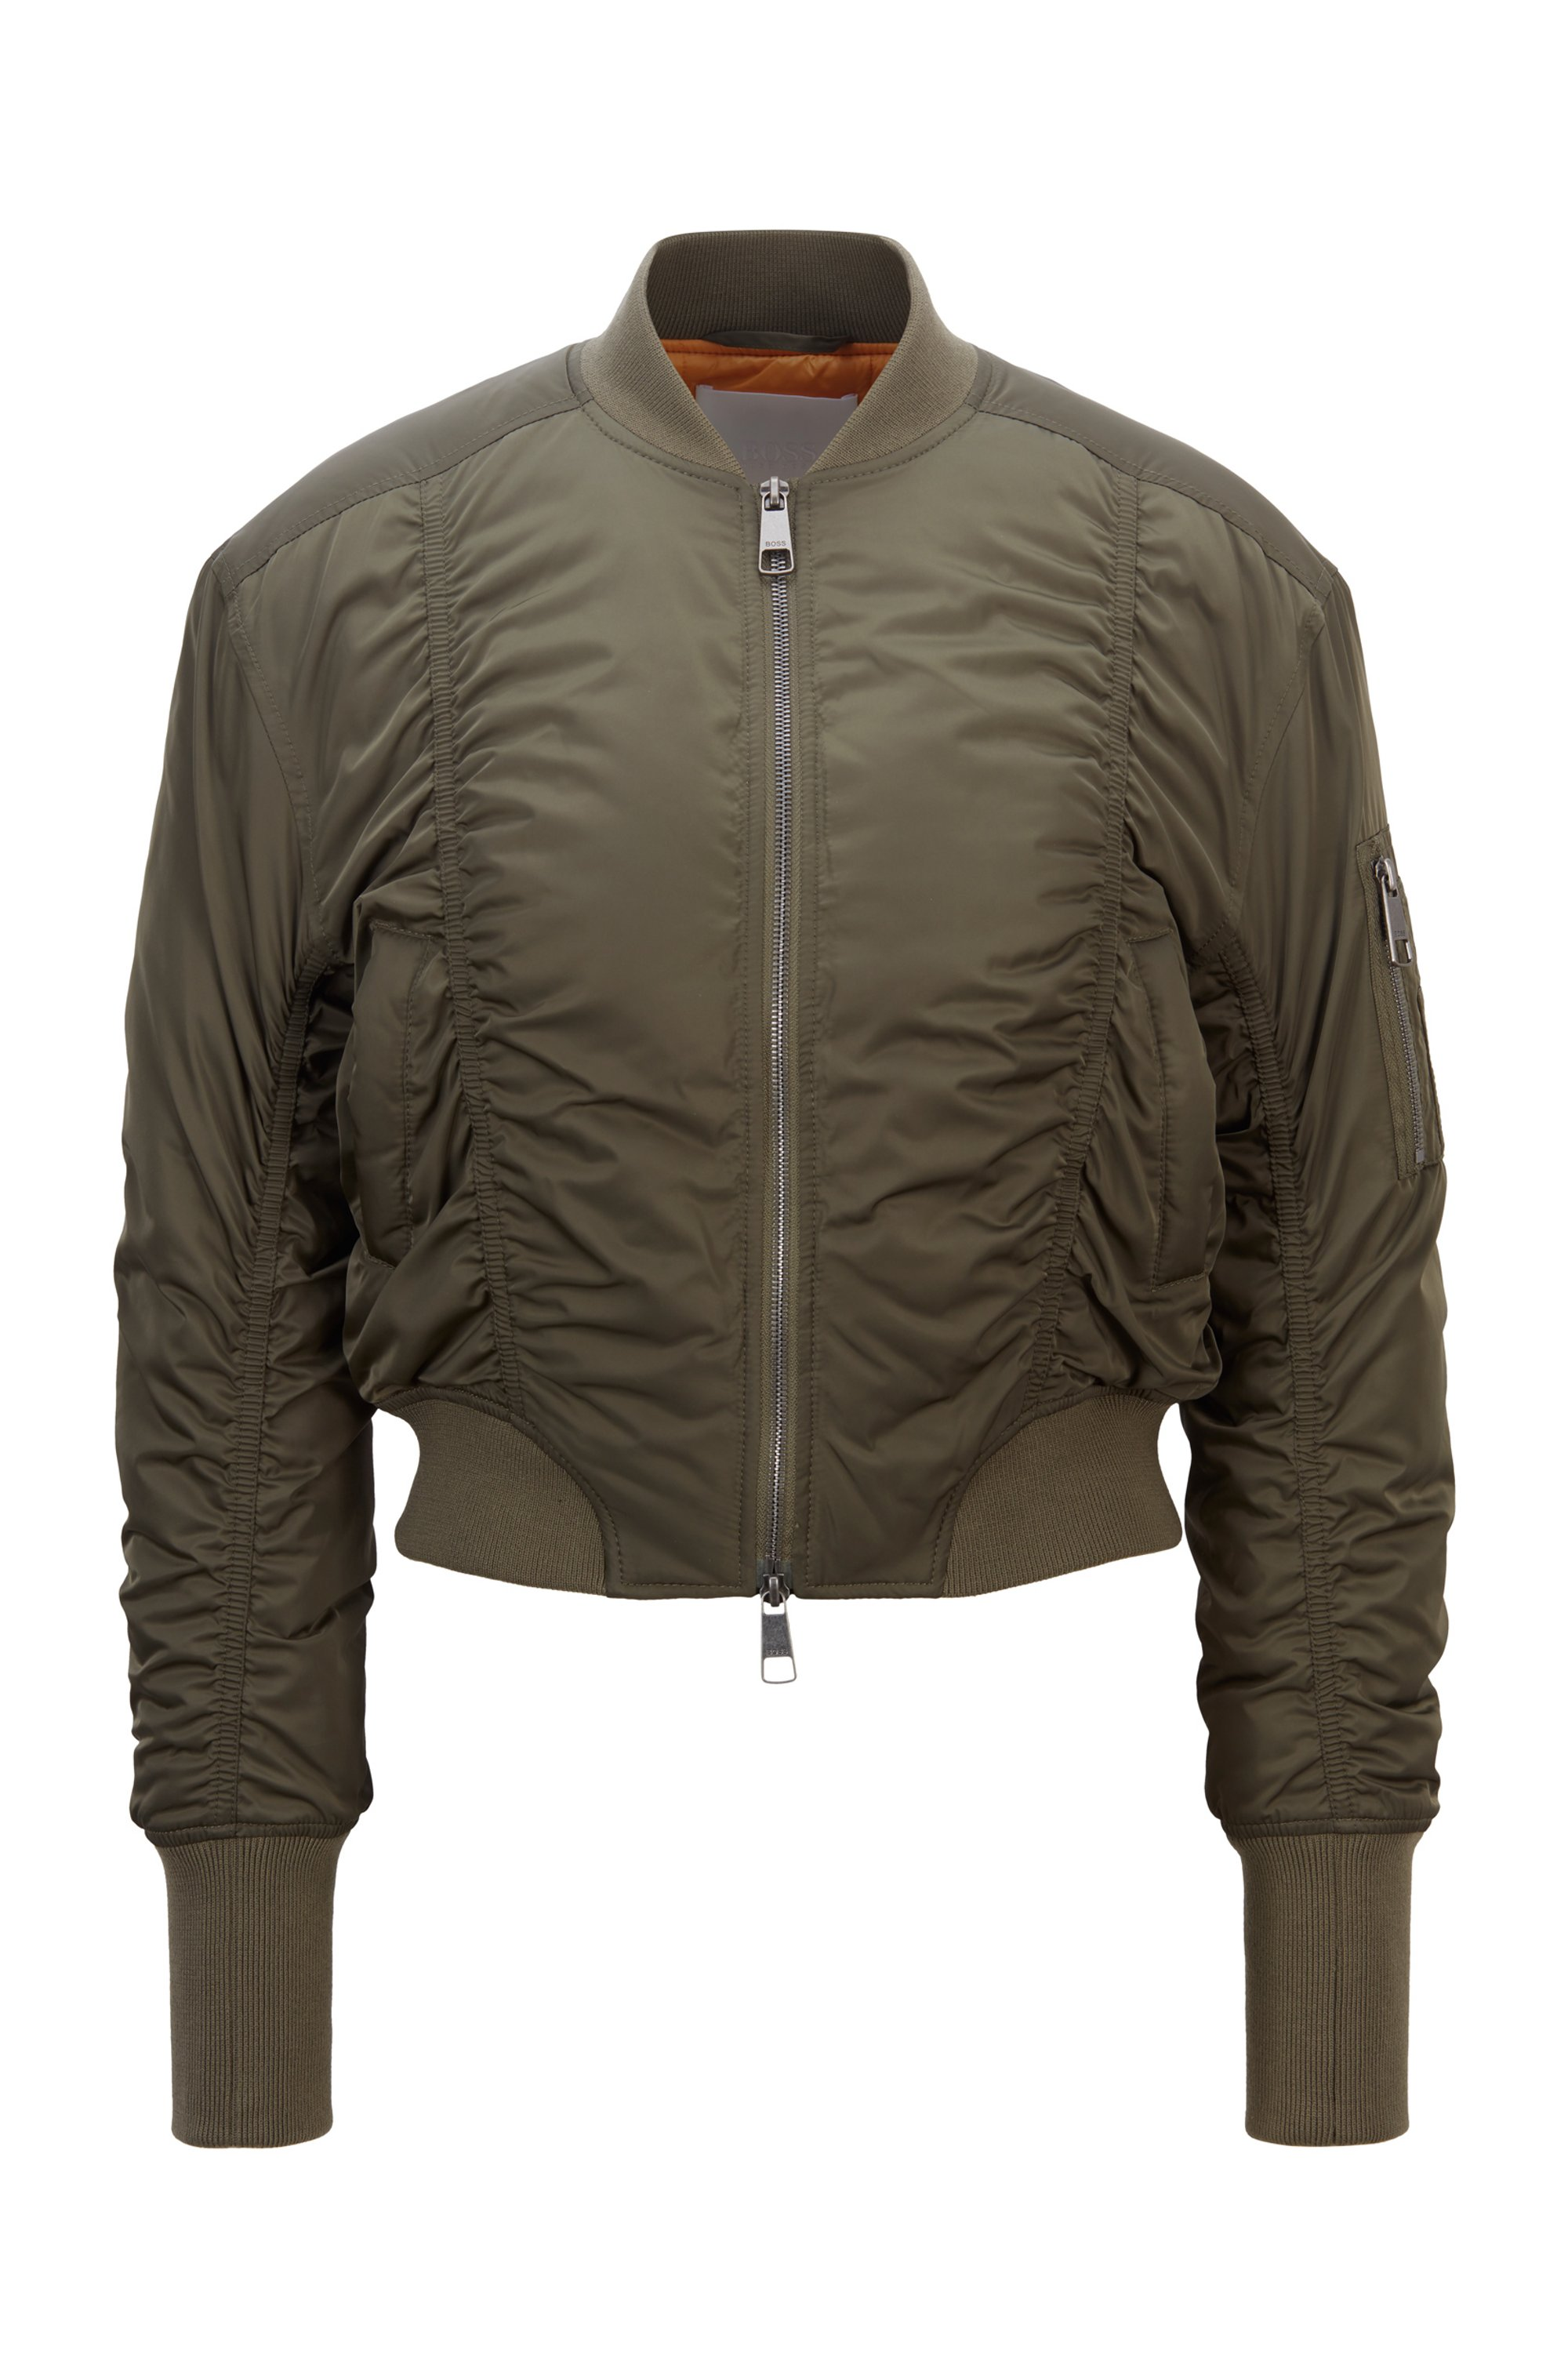 Ruched bomber jacket with patched sleeve pocket, Khaki